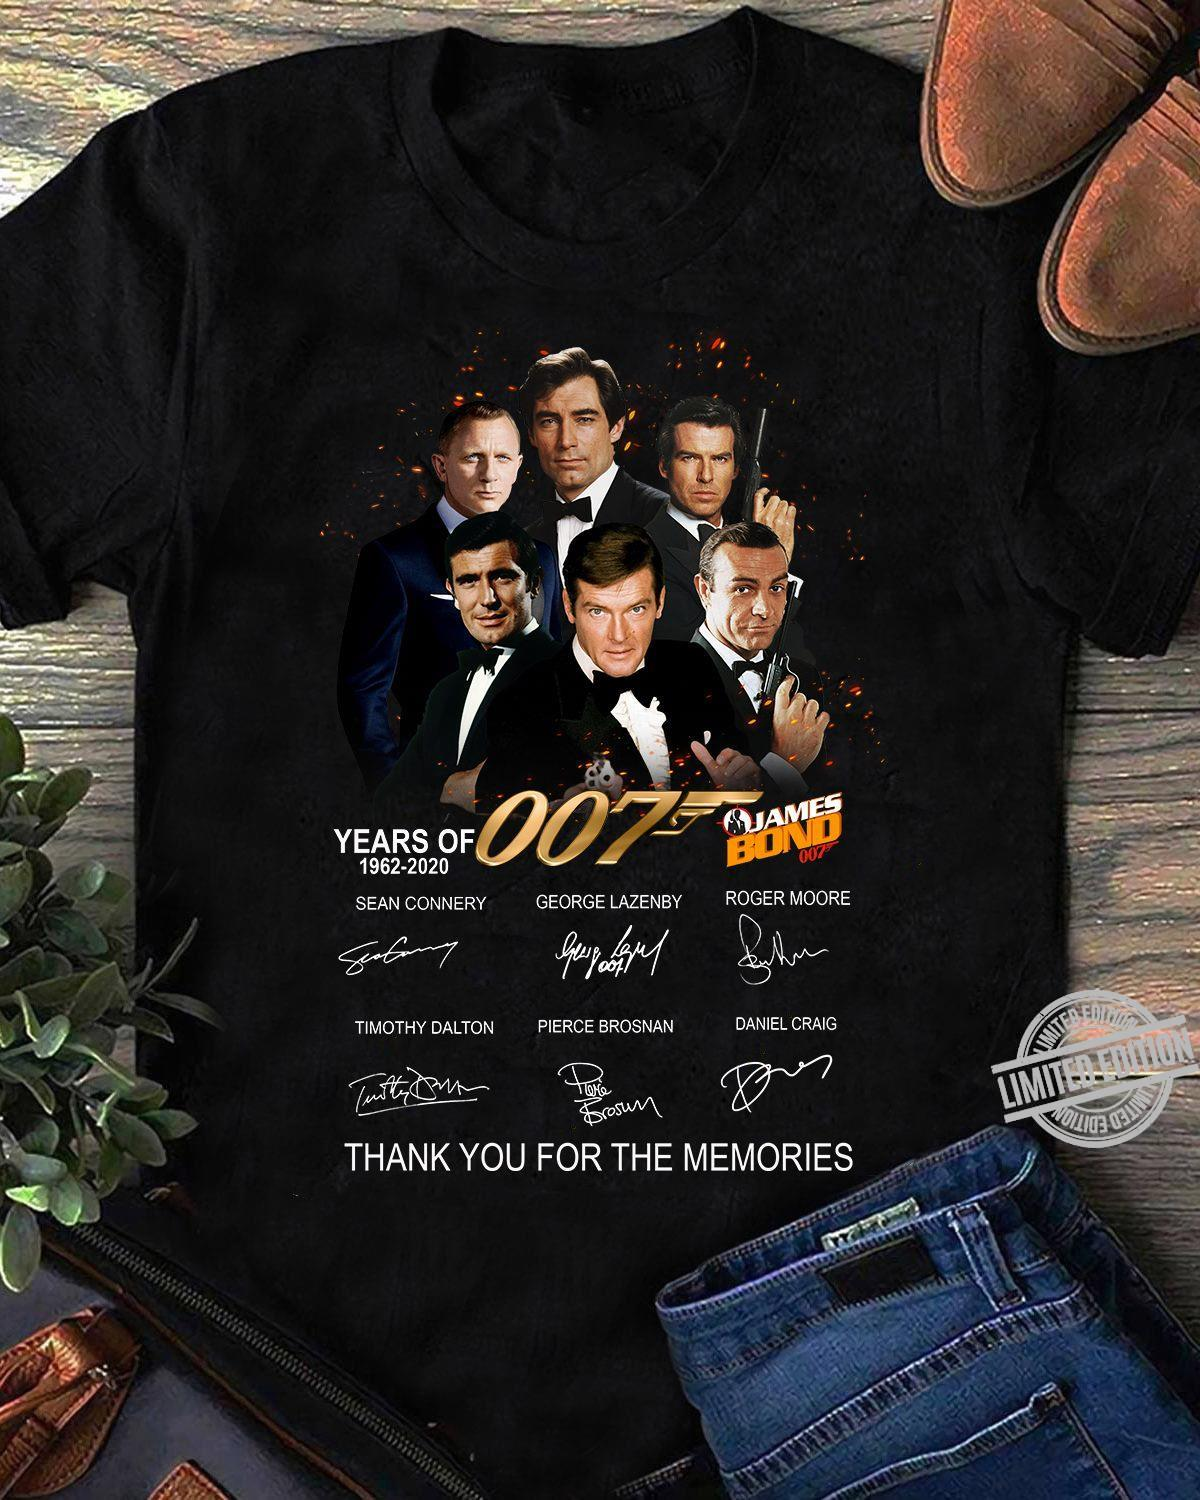 007 James Bond Years Of 1962-2020 Thank You For The Memories Shirt